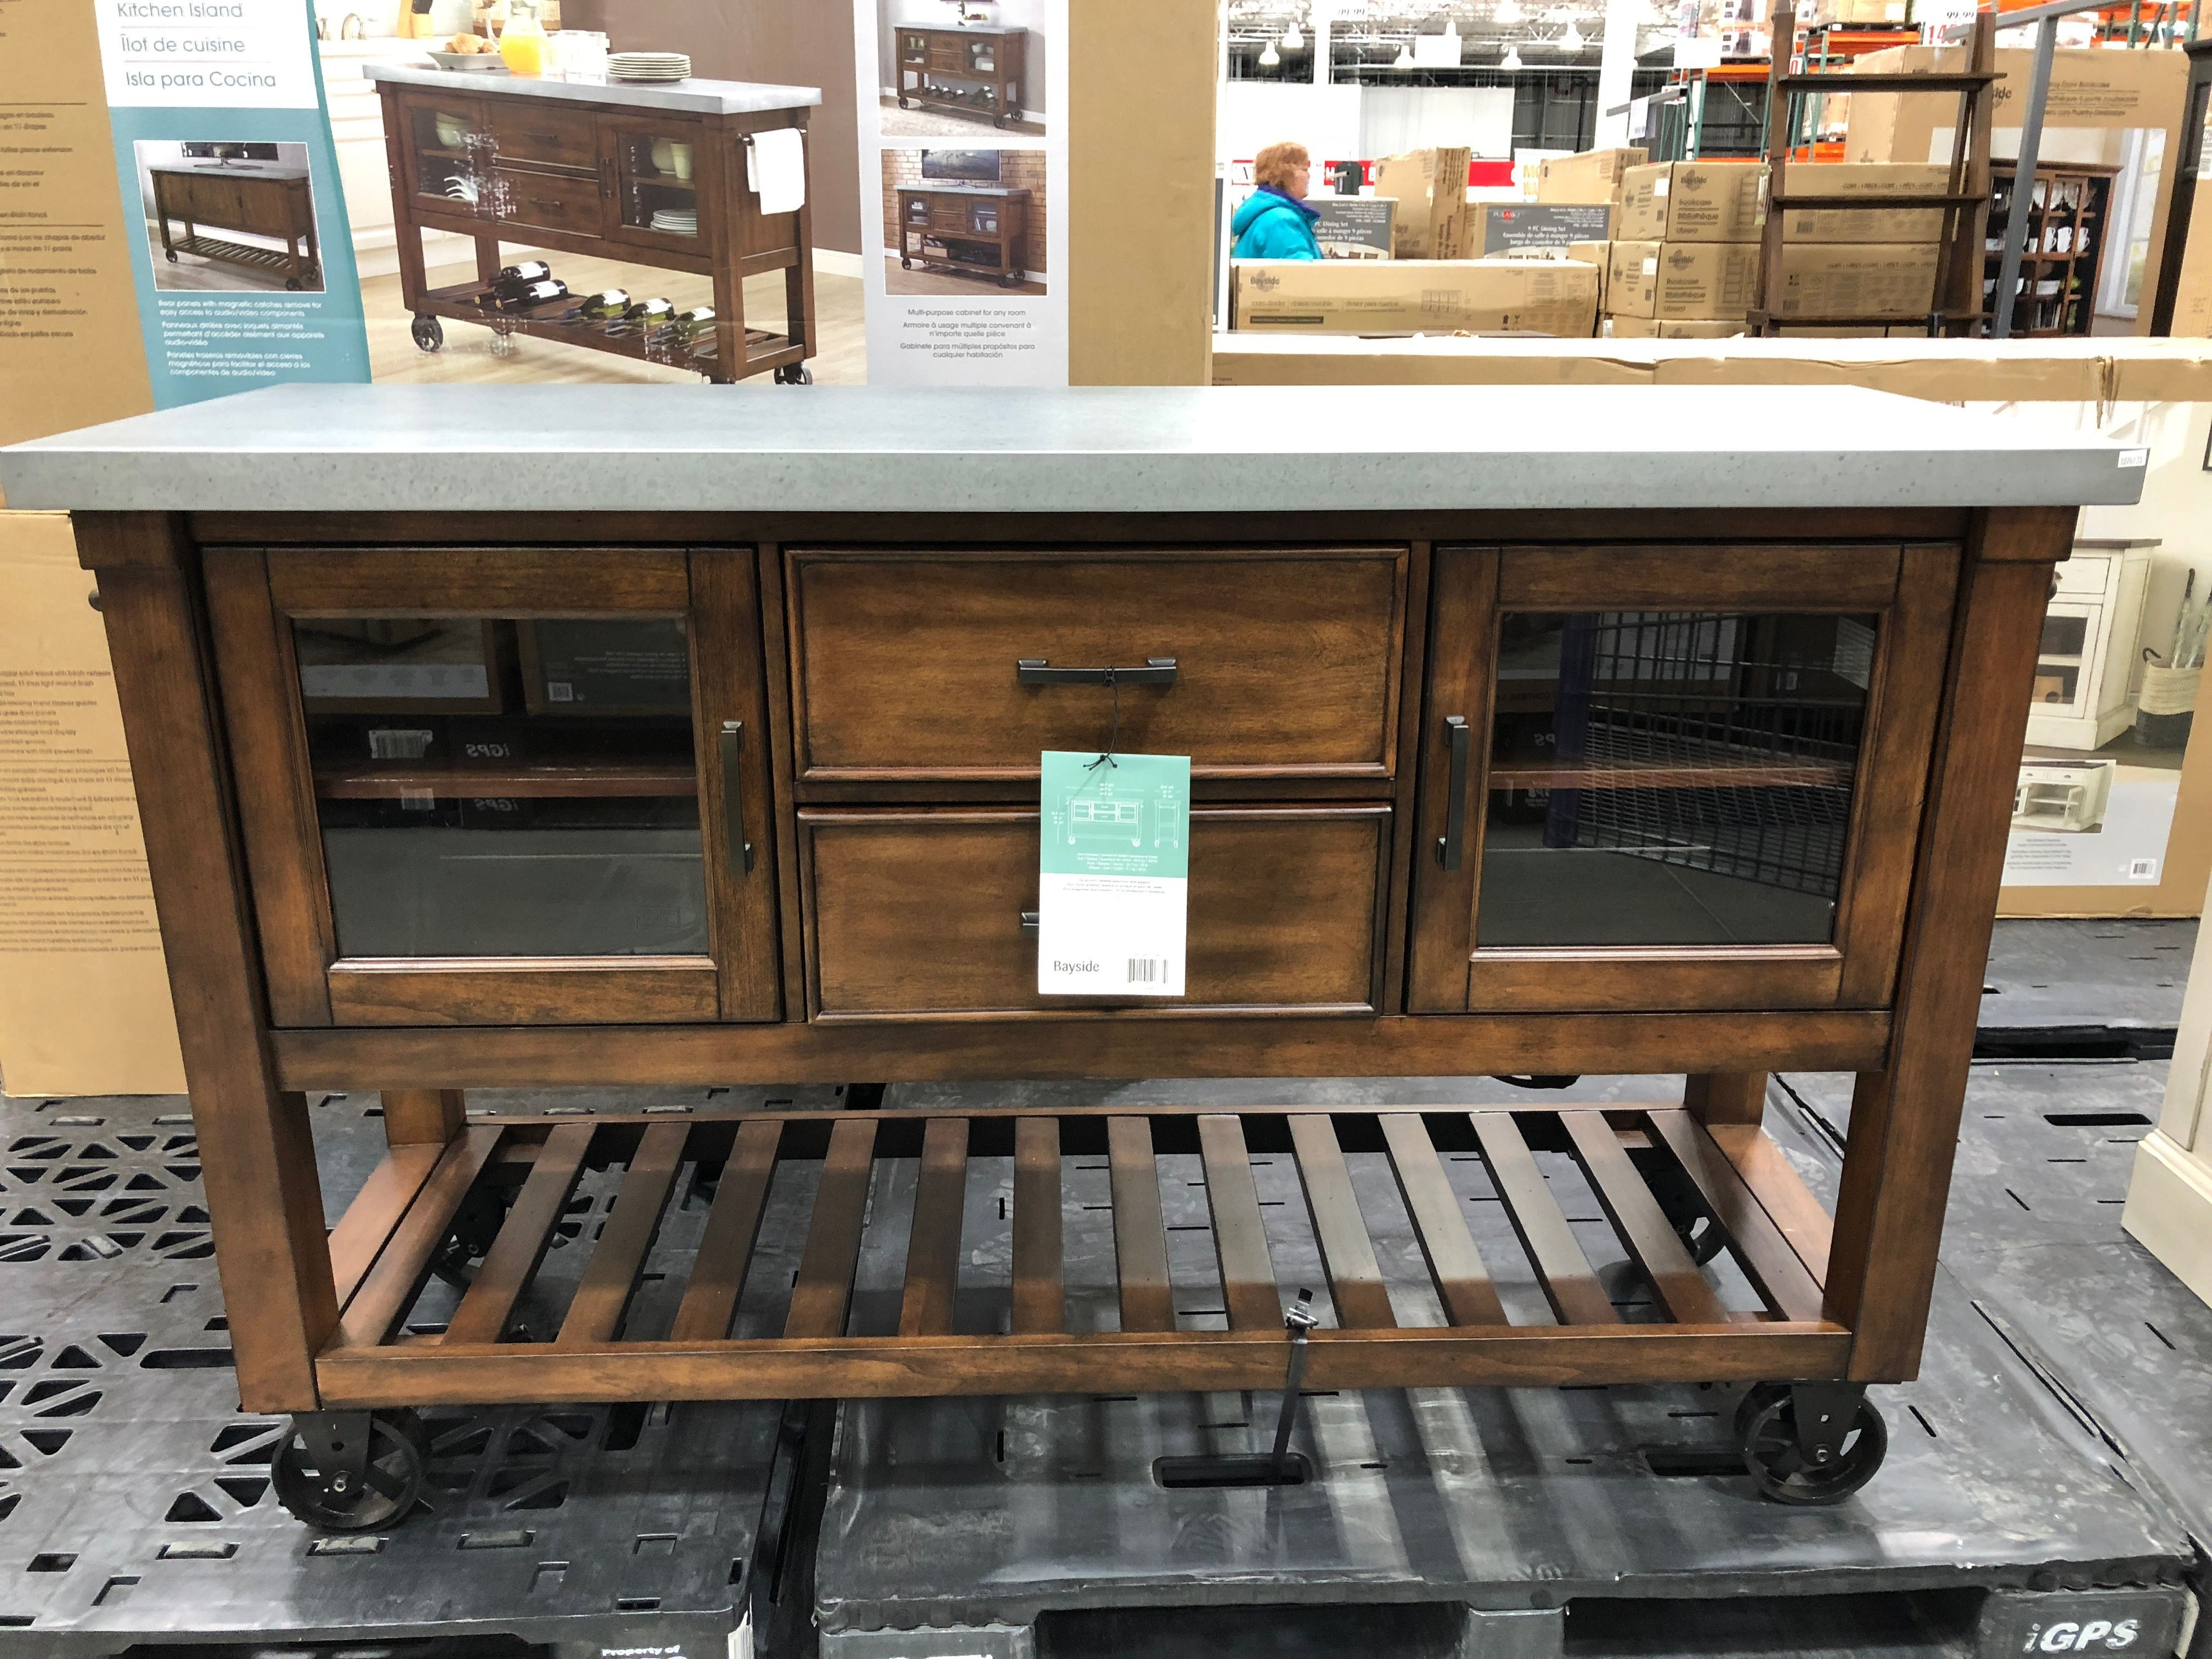 Kitchen Console Slide Out Organizers Cabinets Bayside Island At Costco 399 99 61 X20 X38